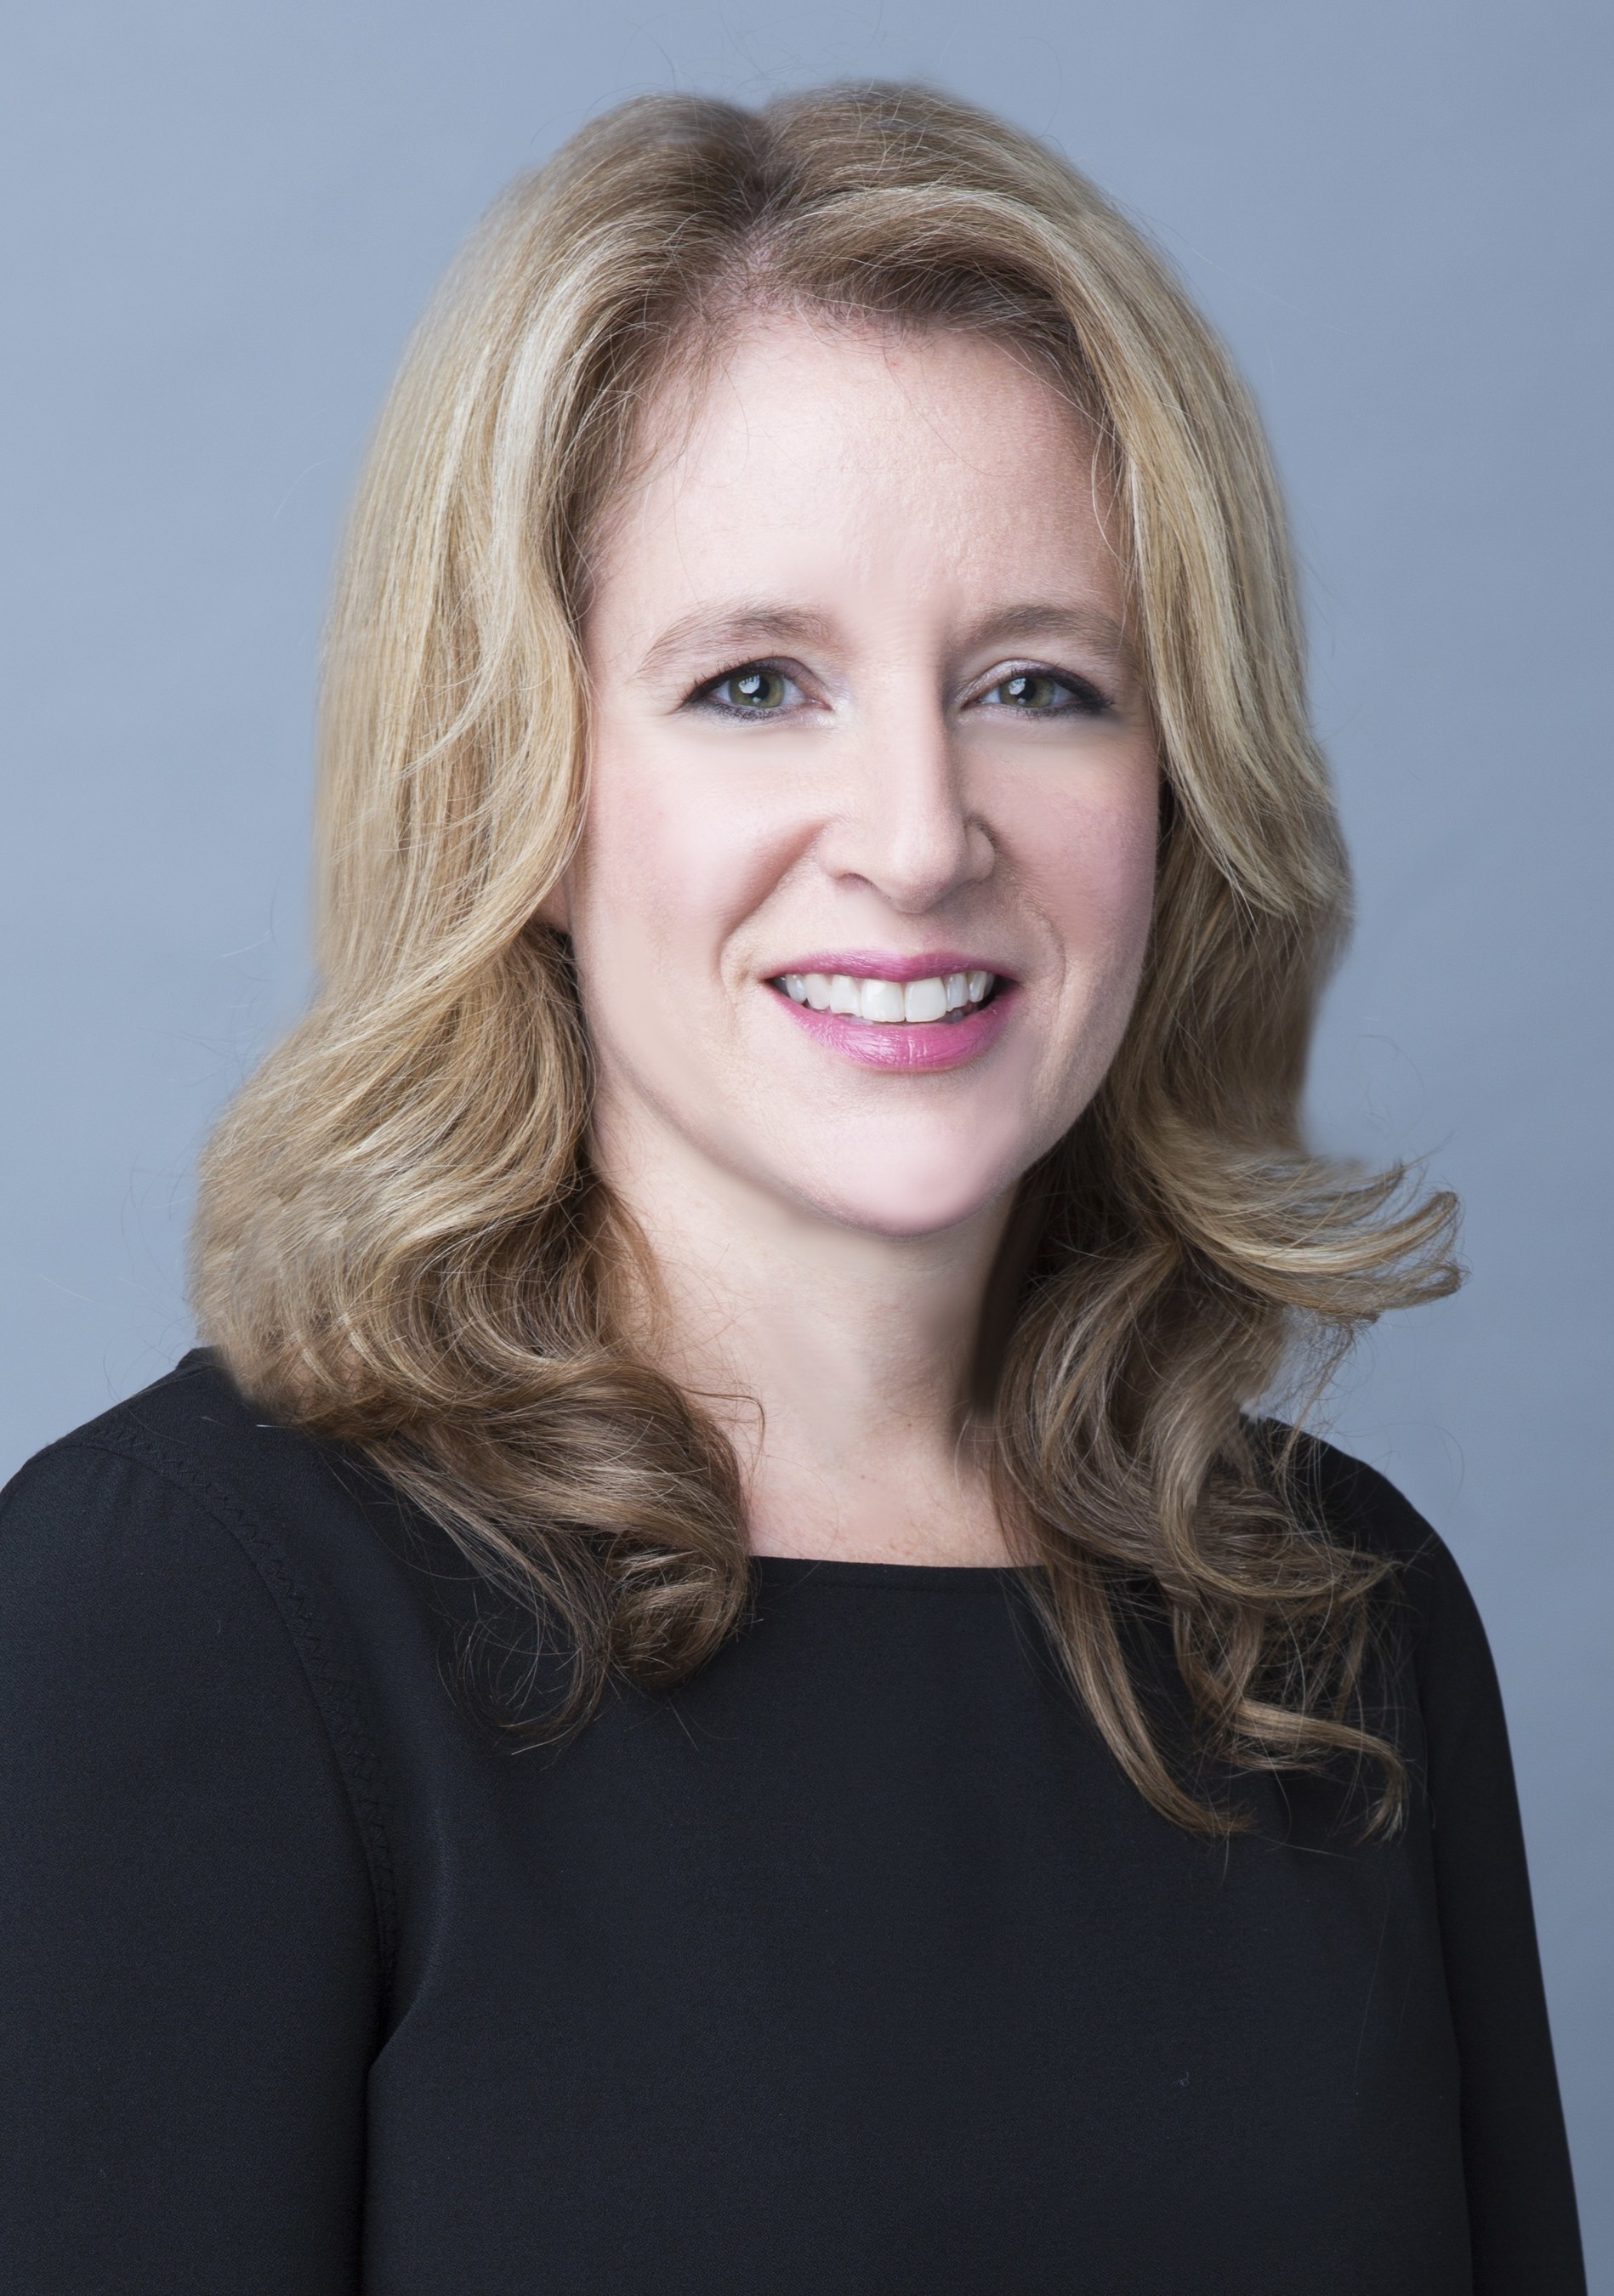 Lands' End promotes Becky Gebhardt to Executive Vice President and Chief Marketing Officer. Gebhardt will lead all aspects of creative and marketing for the global lifestyle brand.